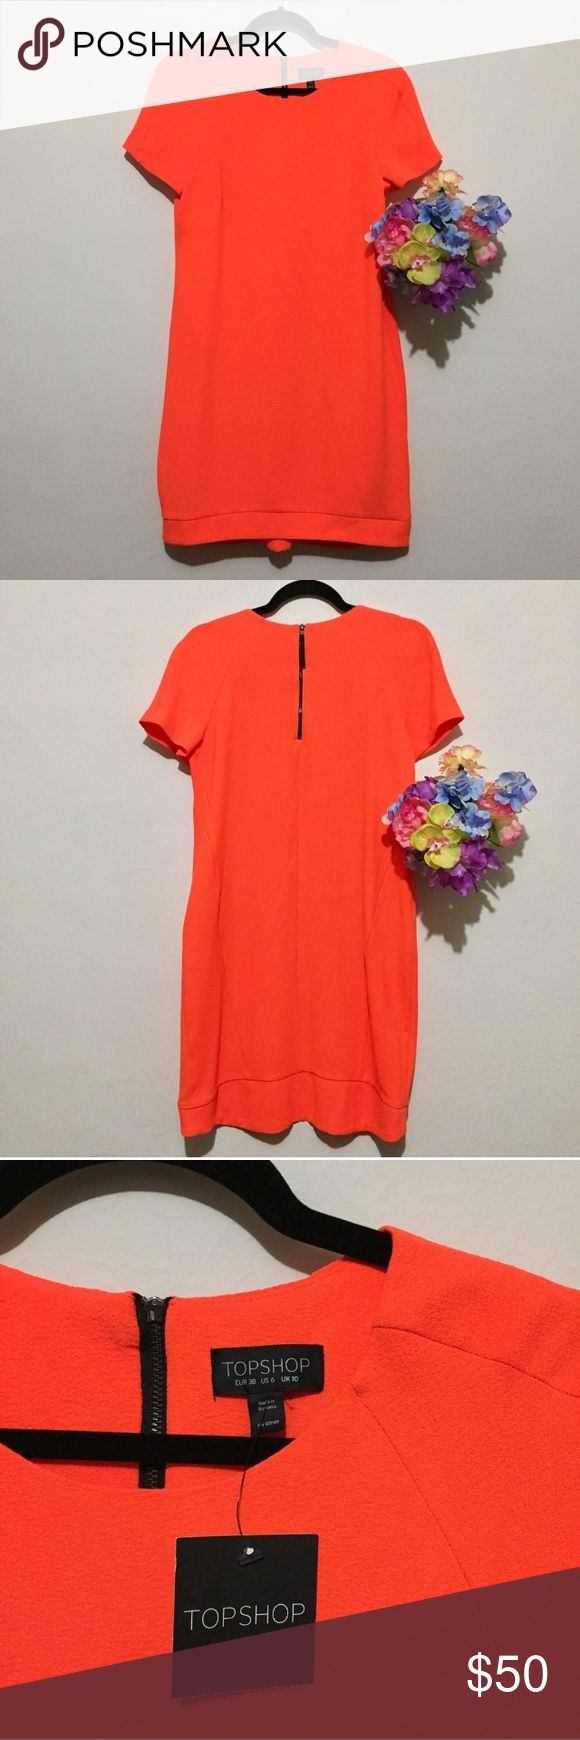 Top Shop Gorgeous orange mini dress Sz 6 BNWT Absolutely adorable, so flattering. Wear this for your summer shindigs! Xo Topshop Dresses Midi